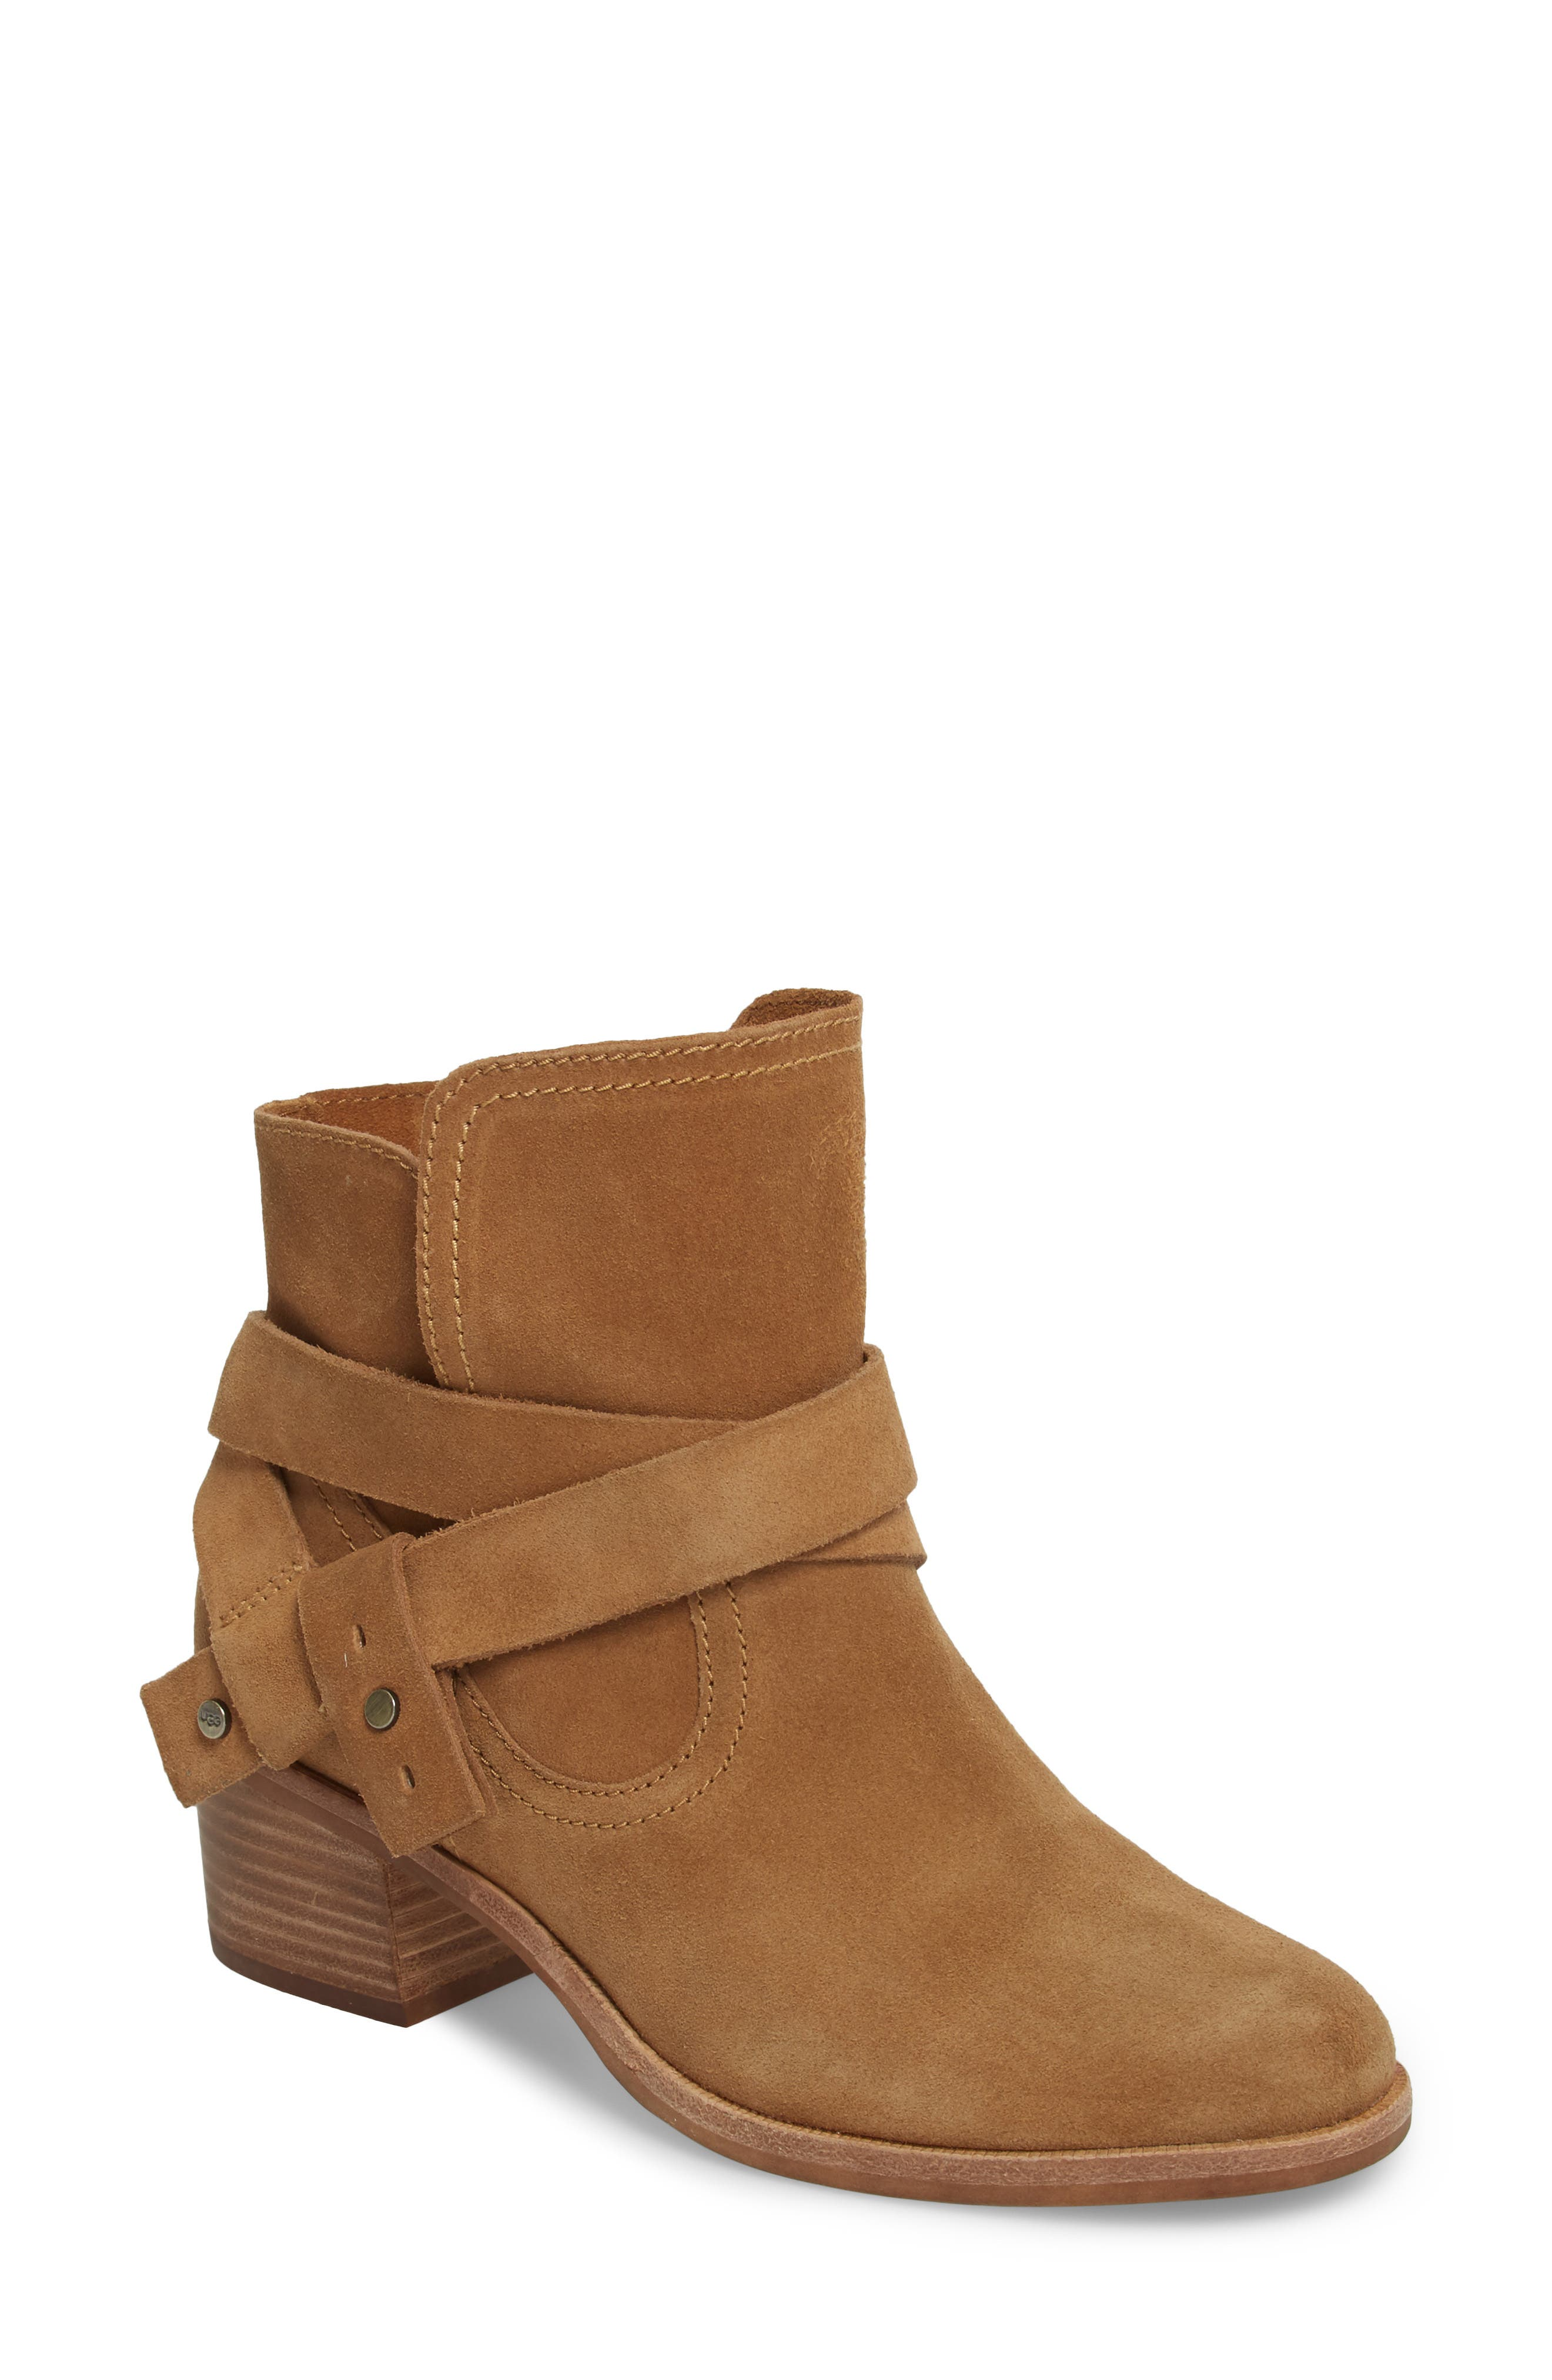 Elora Bootie,                         Main,                         color, Chestnut Suede